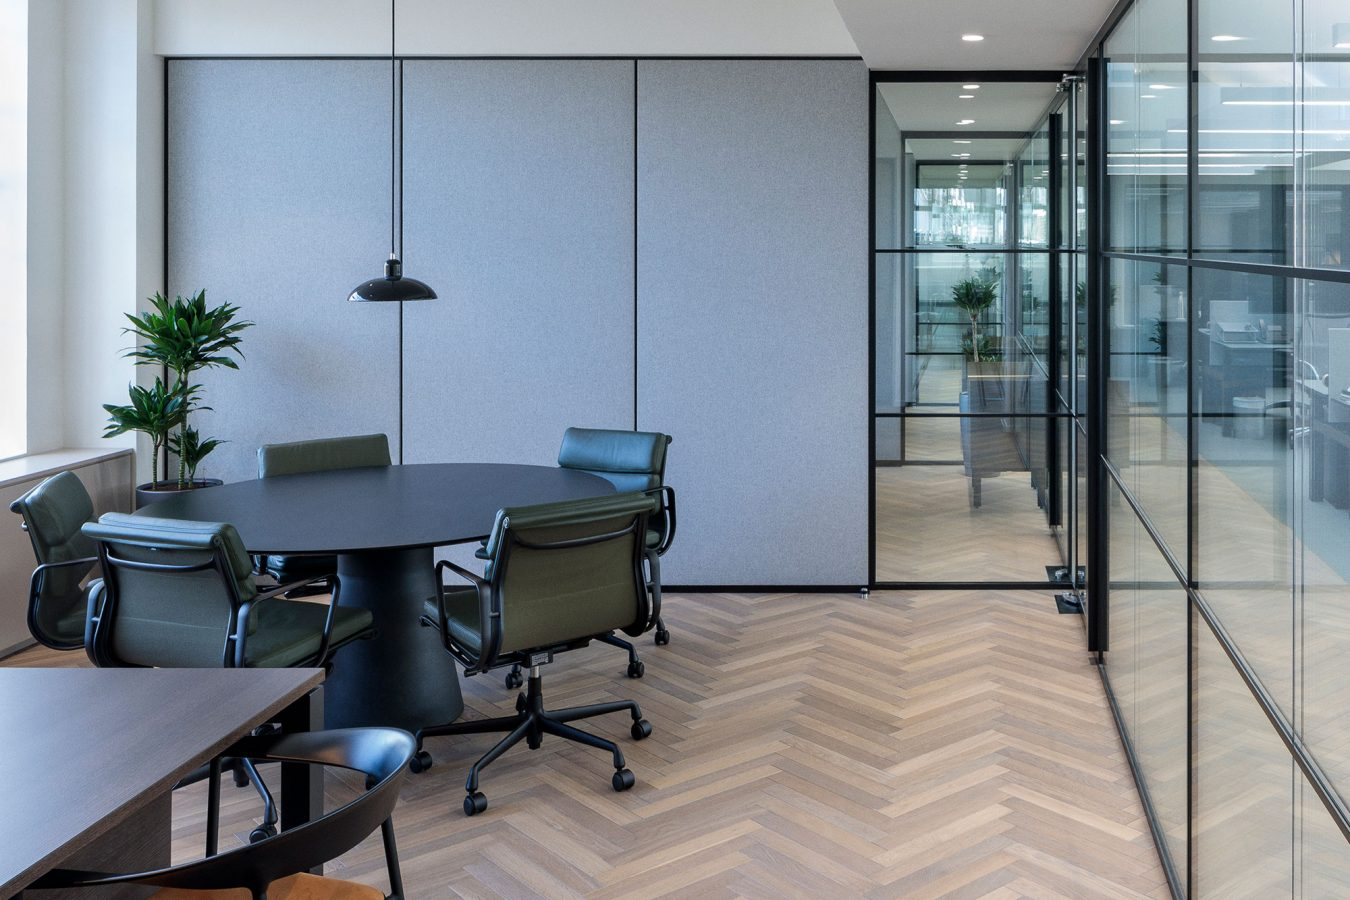 Meeting room designed with parquet floor tiles and glazed partitions.